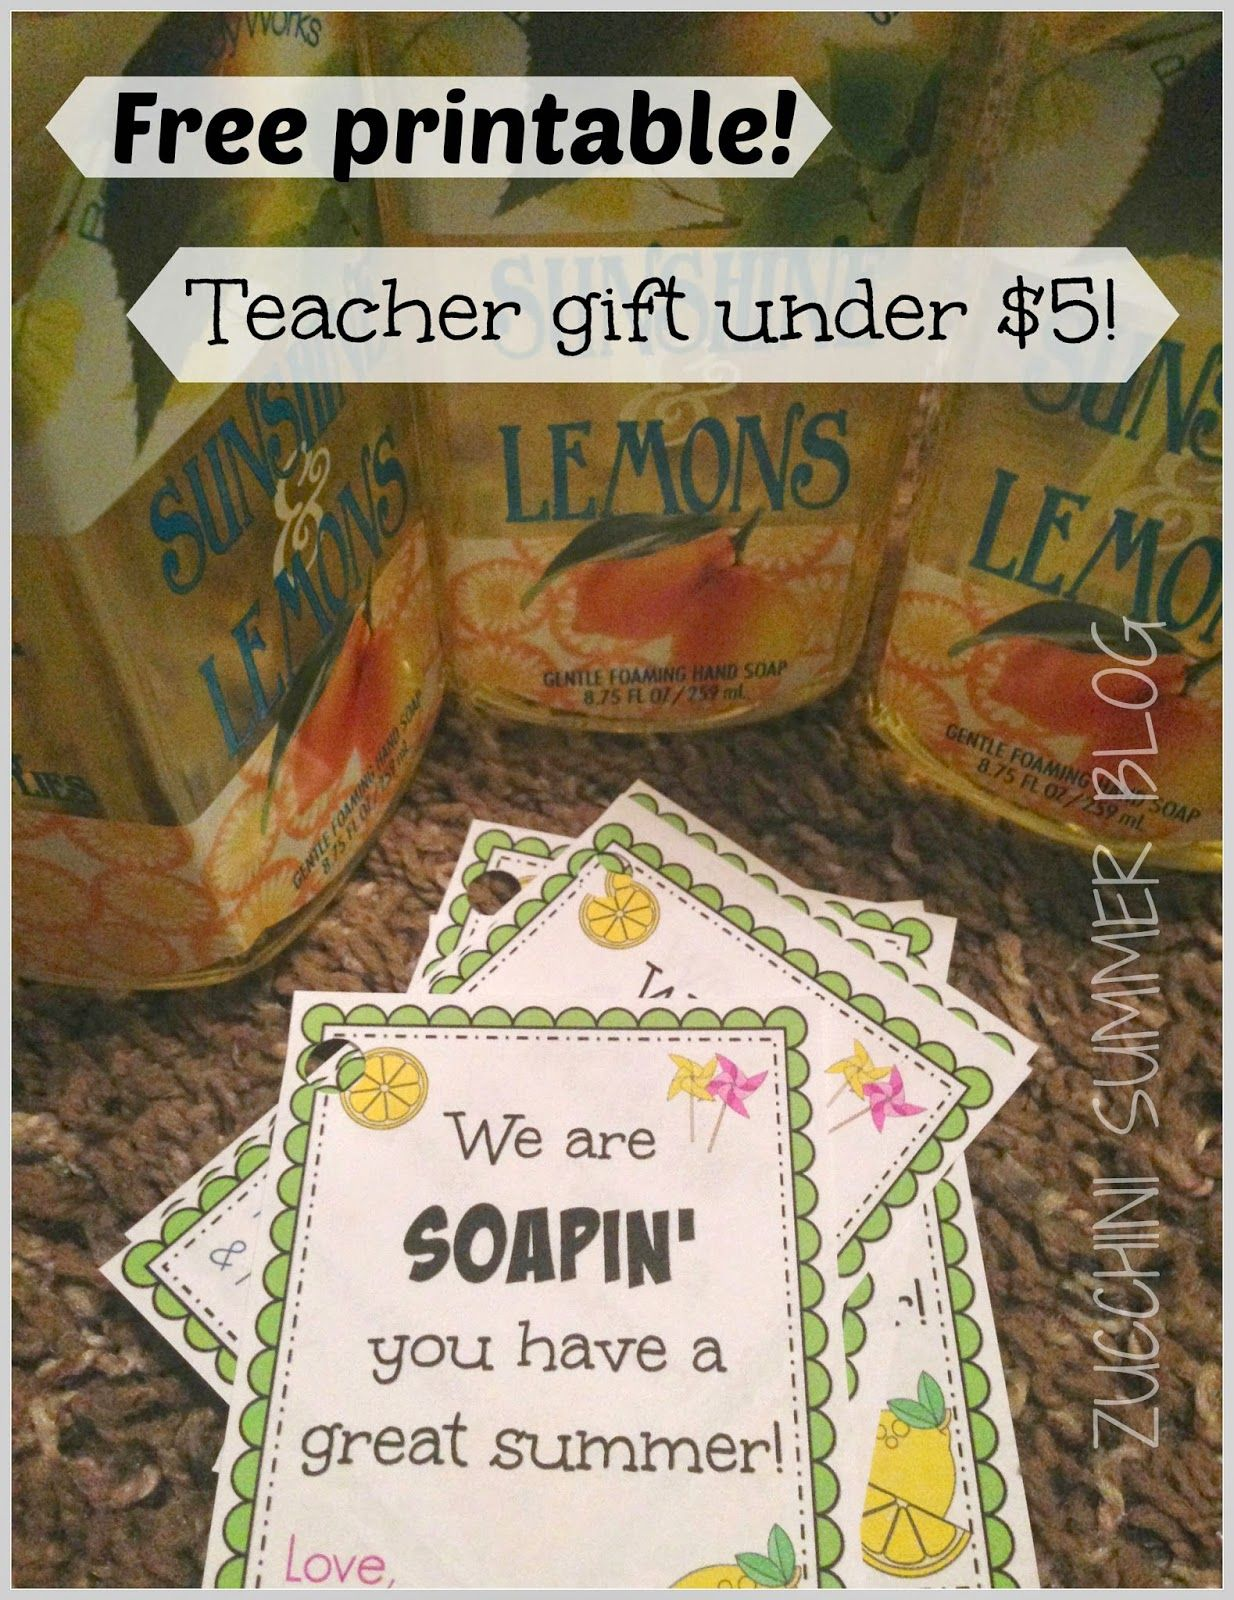 We are soapin you have a great summer teacher appreciation gift teacher appreciation gift add bottle of bath and body works hand soap also good for the school lunch ladies school nurse bus drivers counselor negle Choice Image